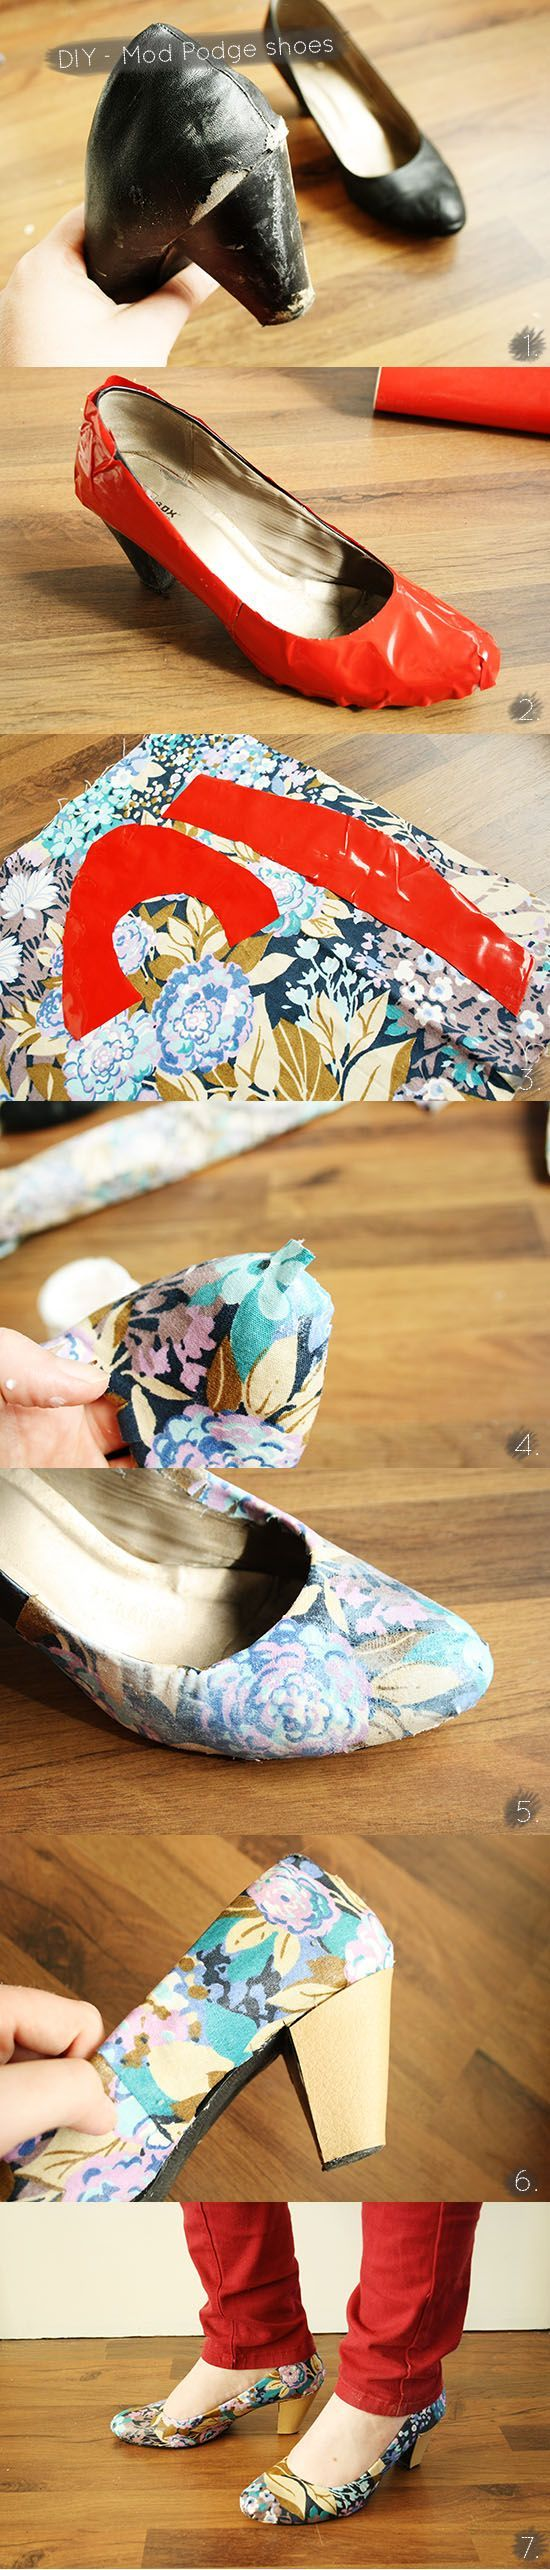 How to Mod Podge fabric on your shoes...Would be a great way to get more mileage from scuffed heels!